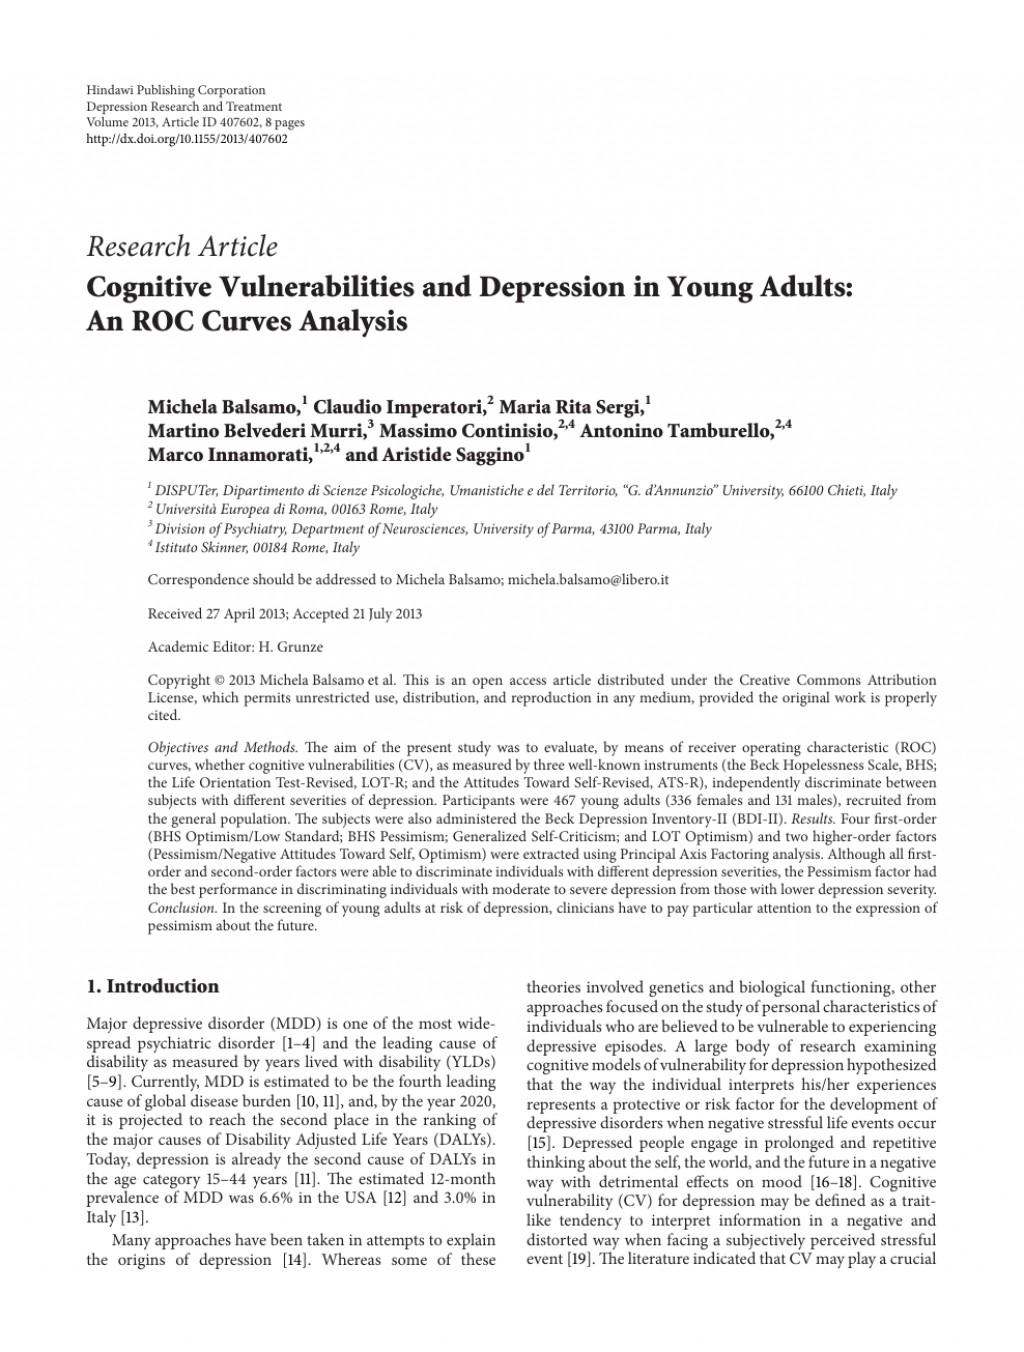 010 Research Paper Introduction To Stunning Depression Large